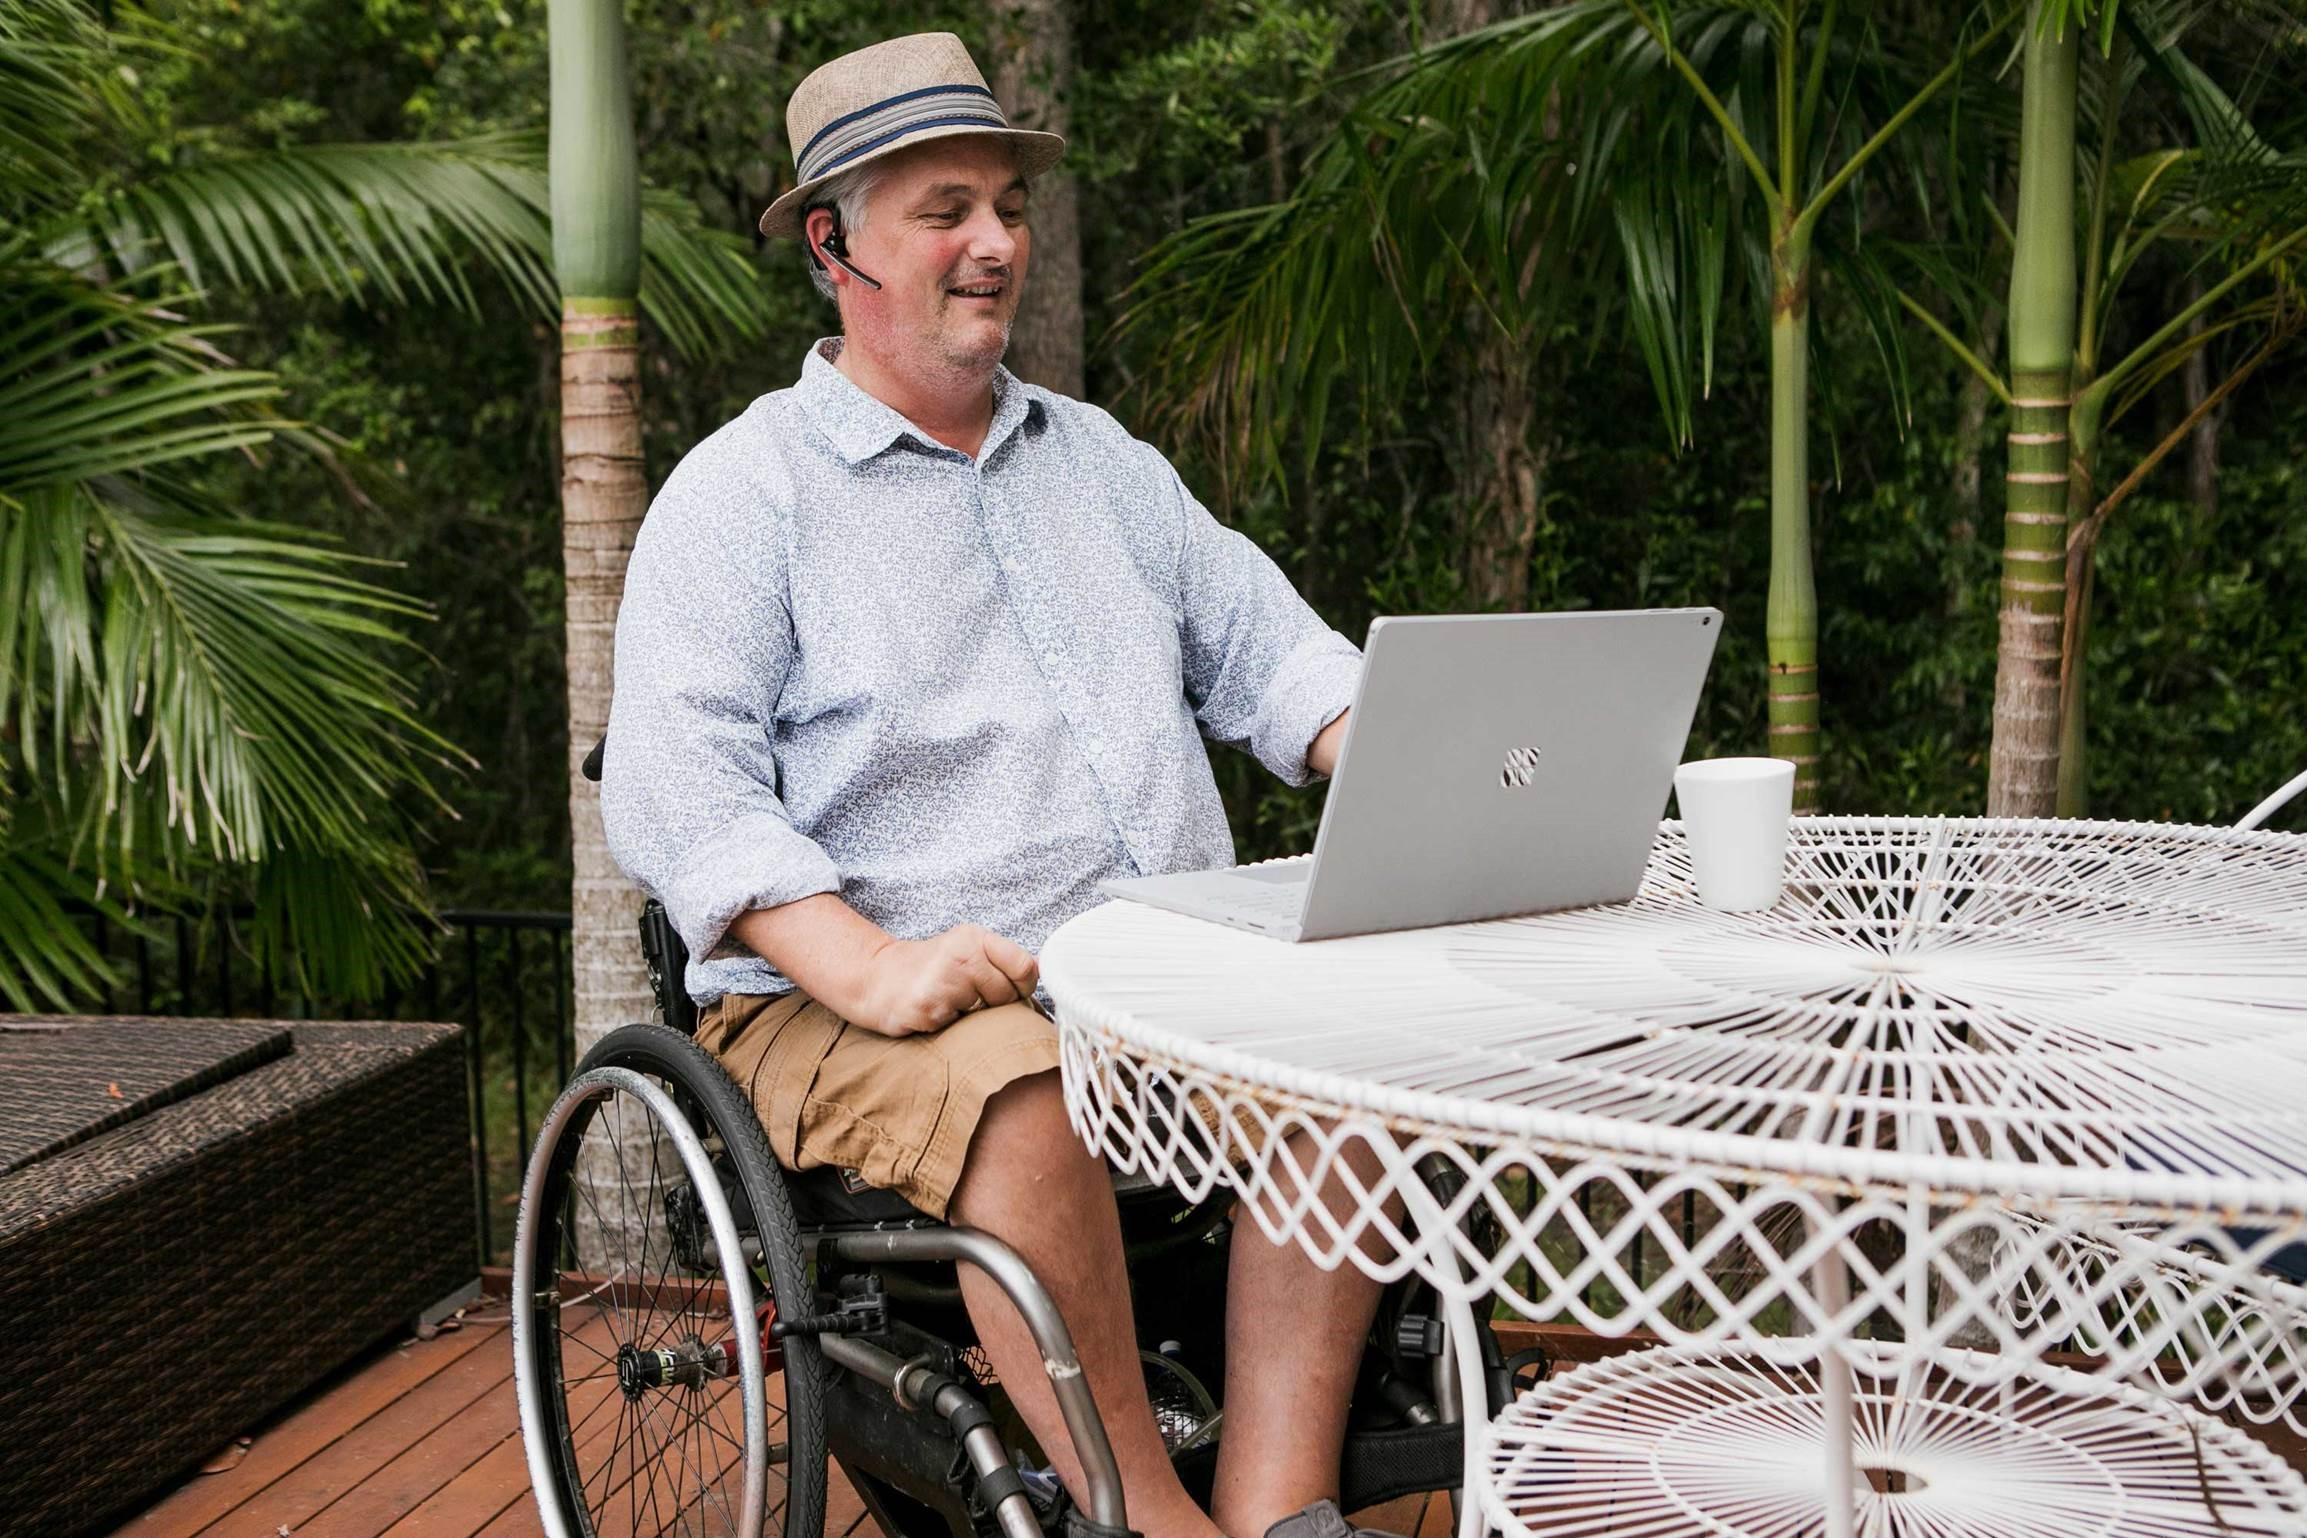 Cam in wheelchair with hat, outside on his laptop smiling